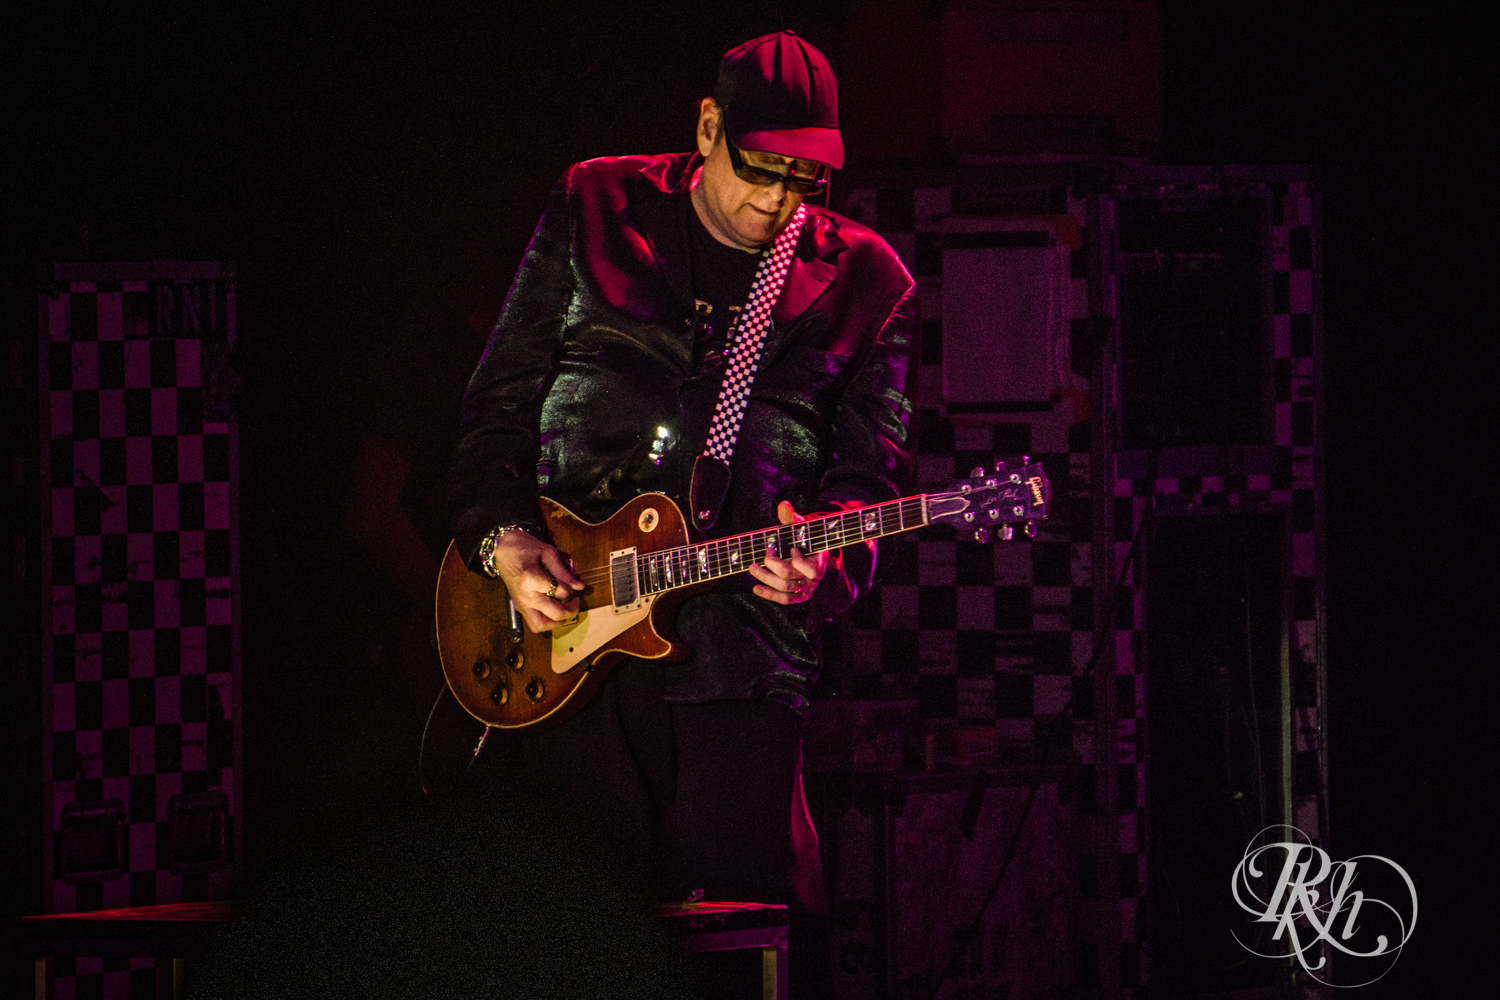 Cheap Trick - Mystic Lake Casino - RKH Images  (15 of 15).jpg